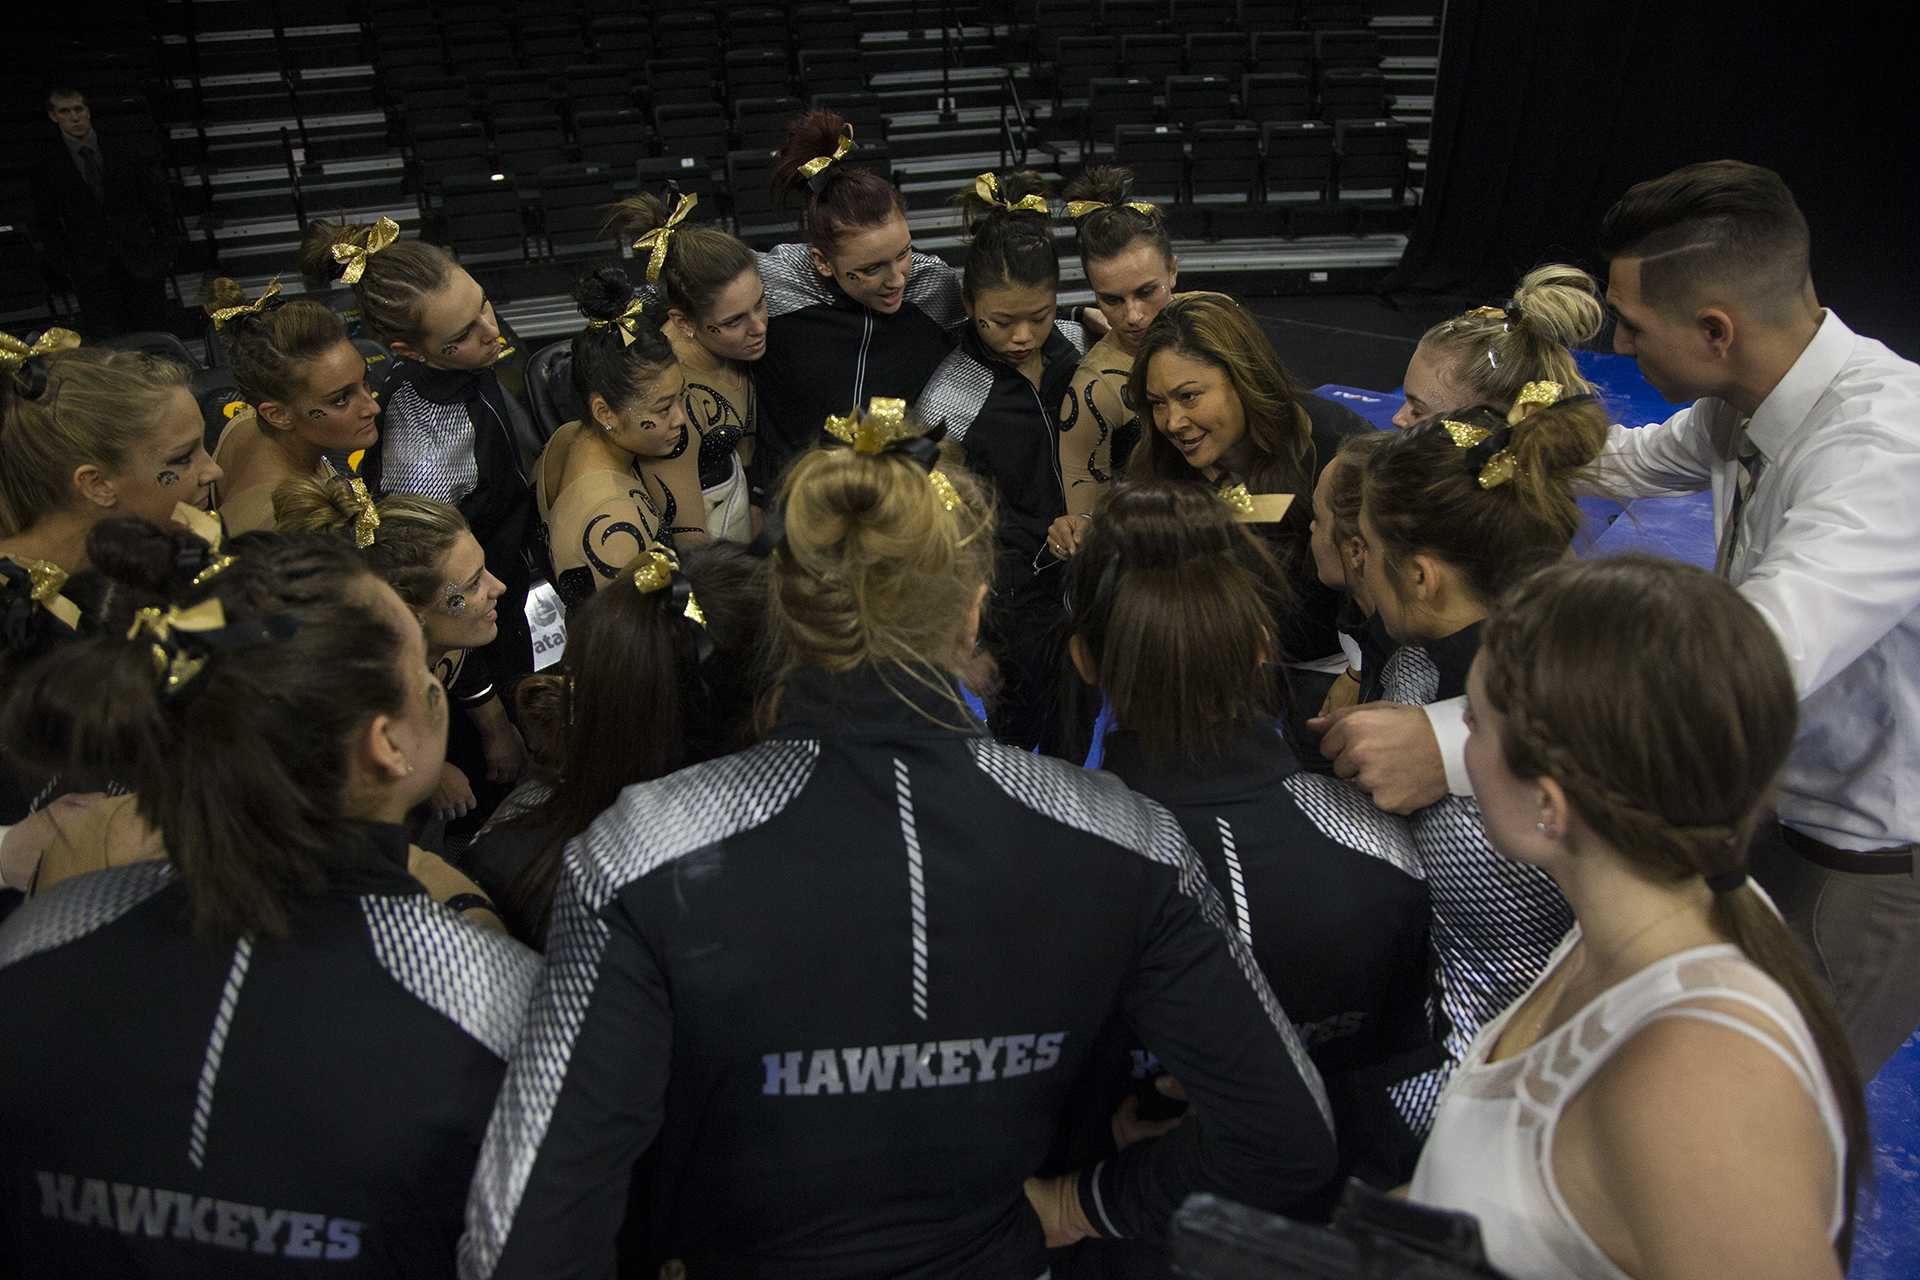 Iowa head coach Larissa Libby huddles with her athletes during a women's gymnastics meet in Carver-Hawkeye Arena on Friday, Jan. 13, 2017. The Hawkeyes defeated the Spartans, 195.475-193.875. (The Daily Iowan/Joseph Cress)